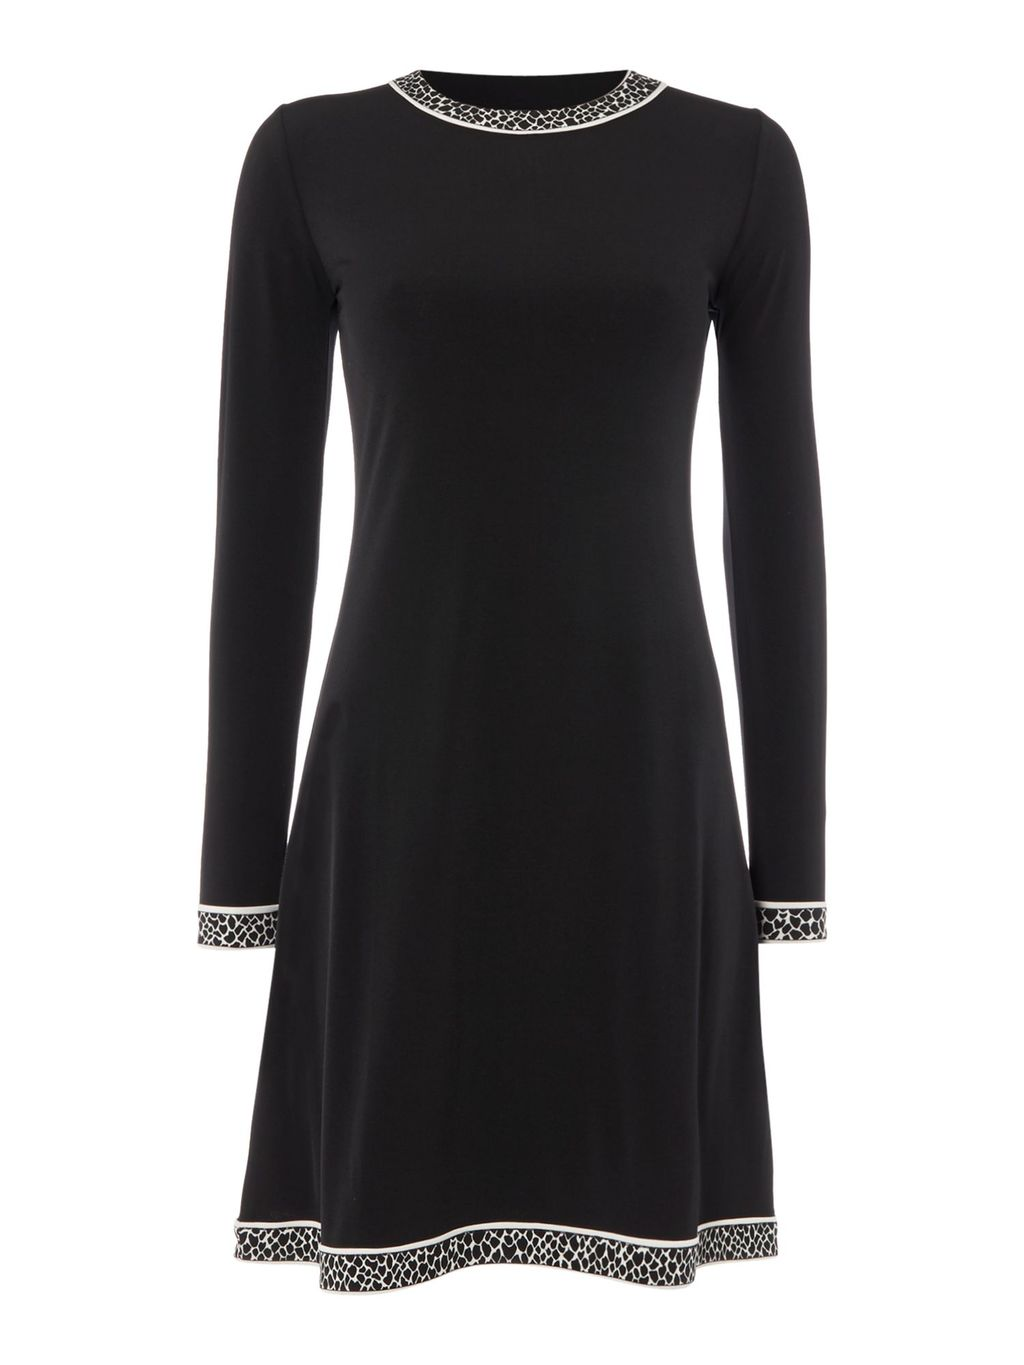 Long Sleeve Dress, Black - length: mid thigh; secondary colour: white; predominant colour: black; fit: fitted at waist & bust; style: fit & flare; fibres: polyester/polyamide - stretch; neckline: crew; sleeve length: long sleeve; sleeve style: standard; pattern type: fabric; pattern size: light/subtle; pattern: animal print; texture group: jersey - stretchy/drapey; occasions: creative work; season: a/w 2016; wardrobe: highlight